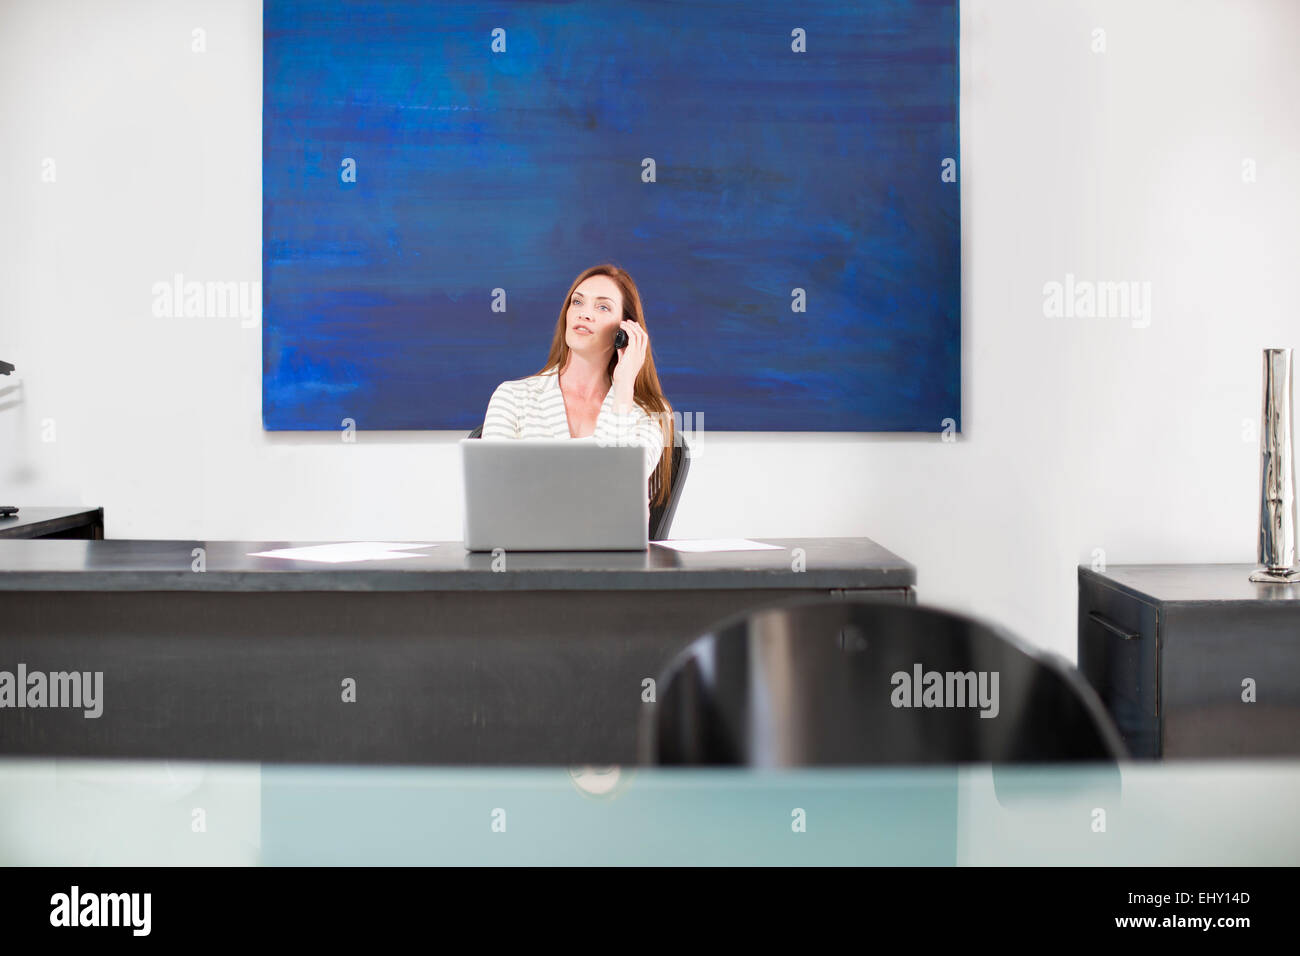 Businesswoman in modern office talking on phone - Stock Image